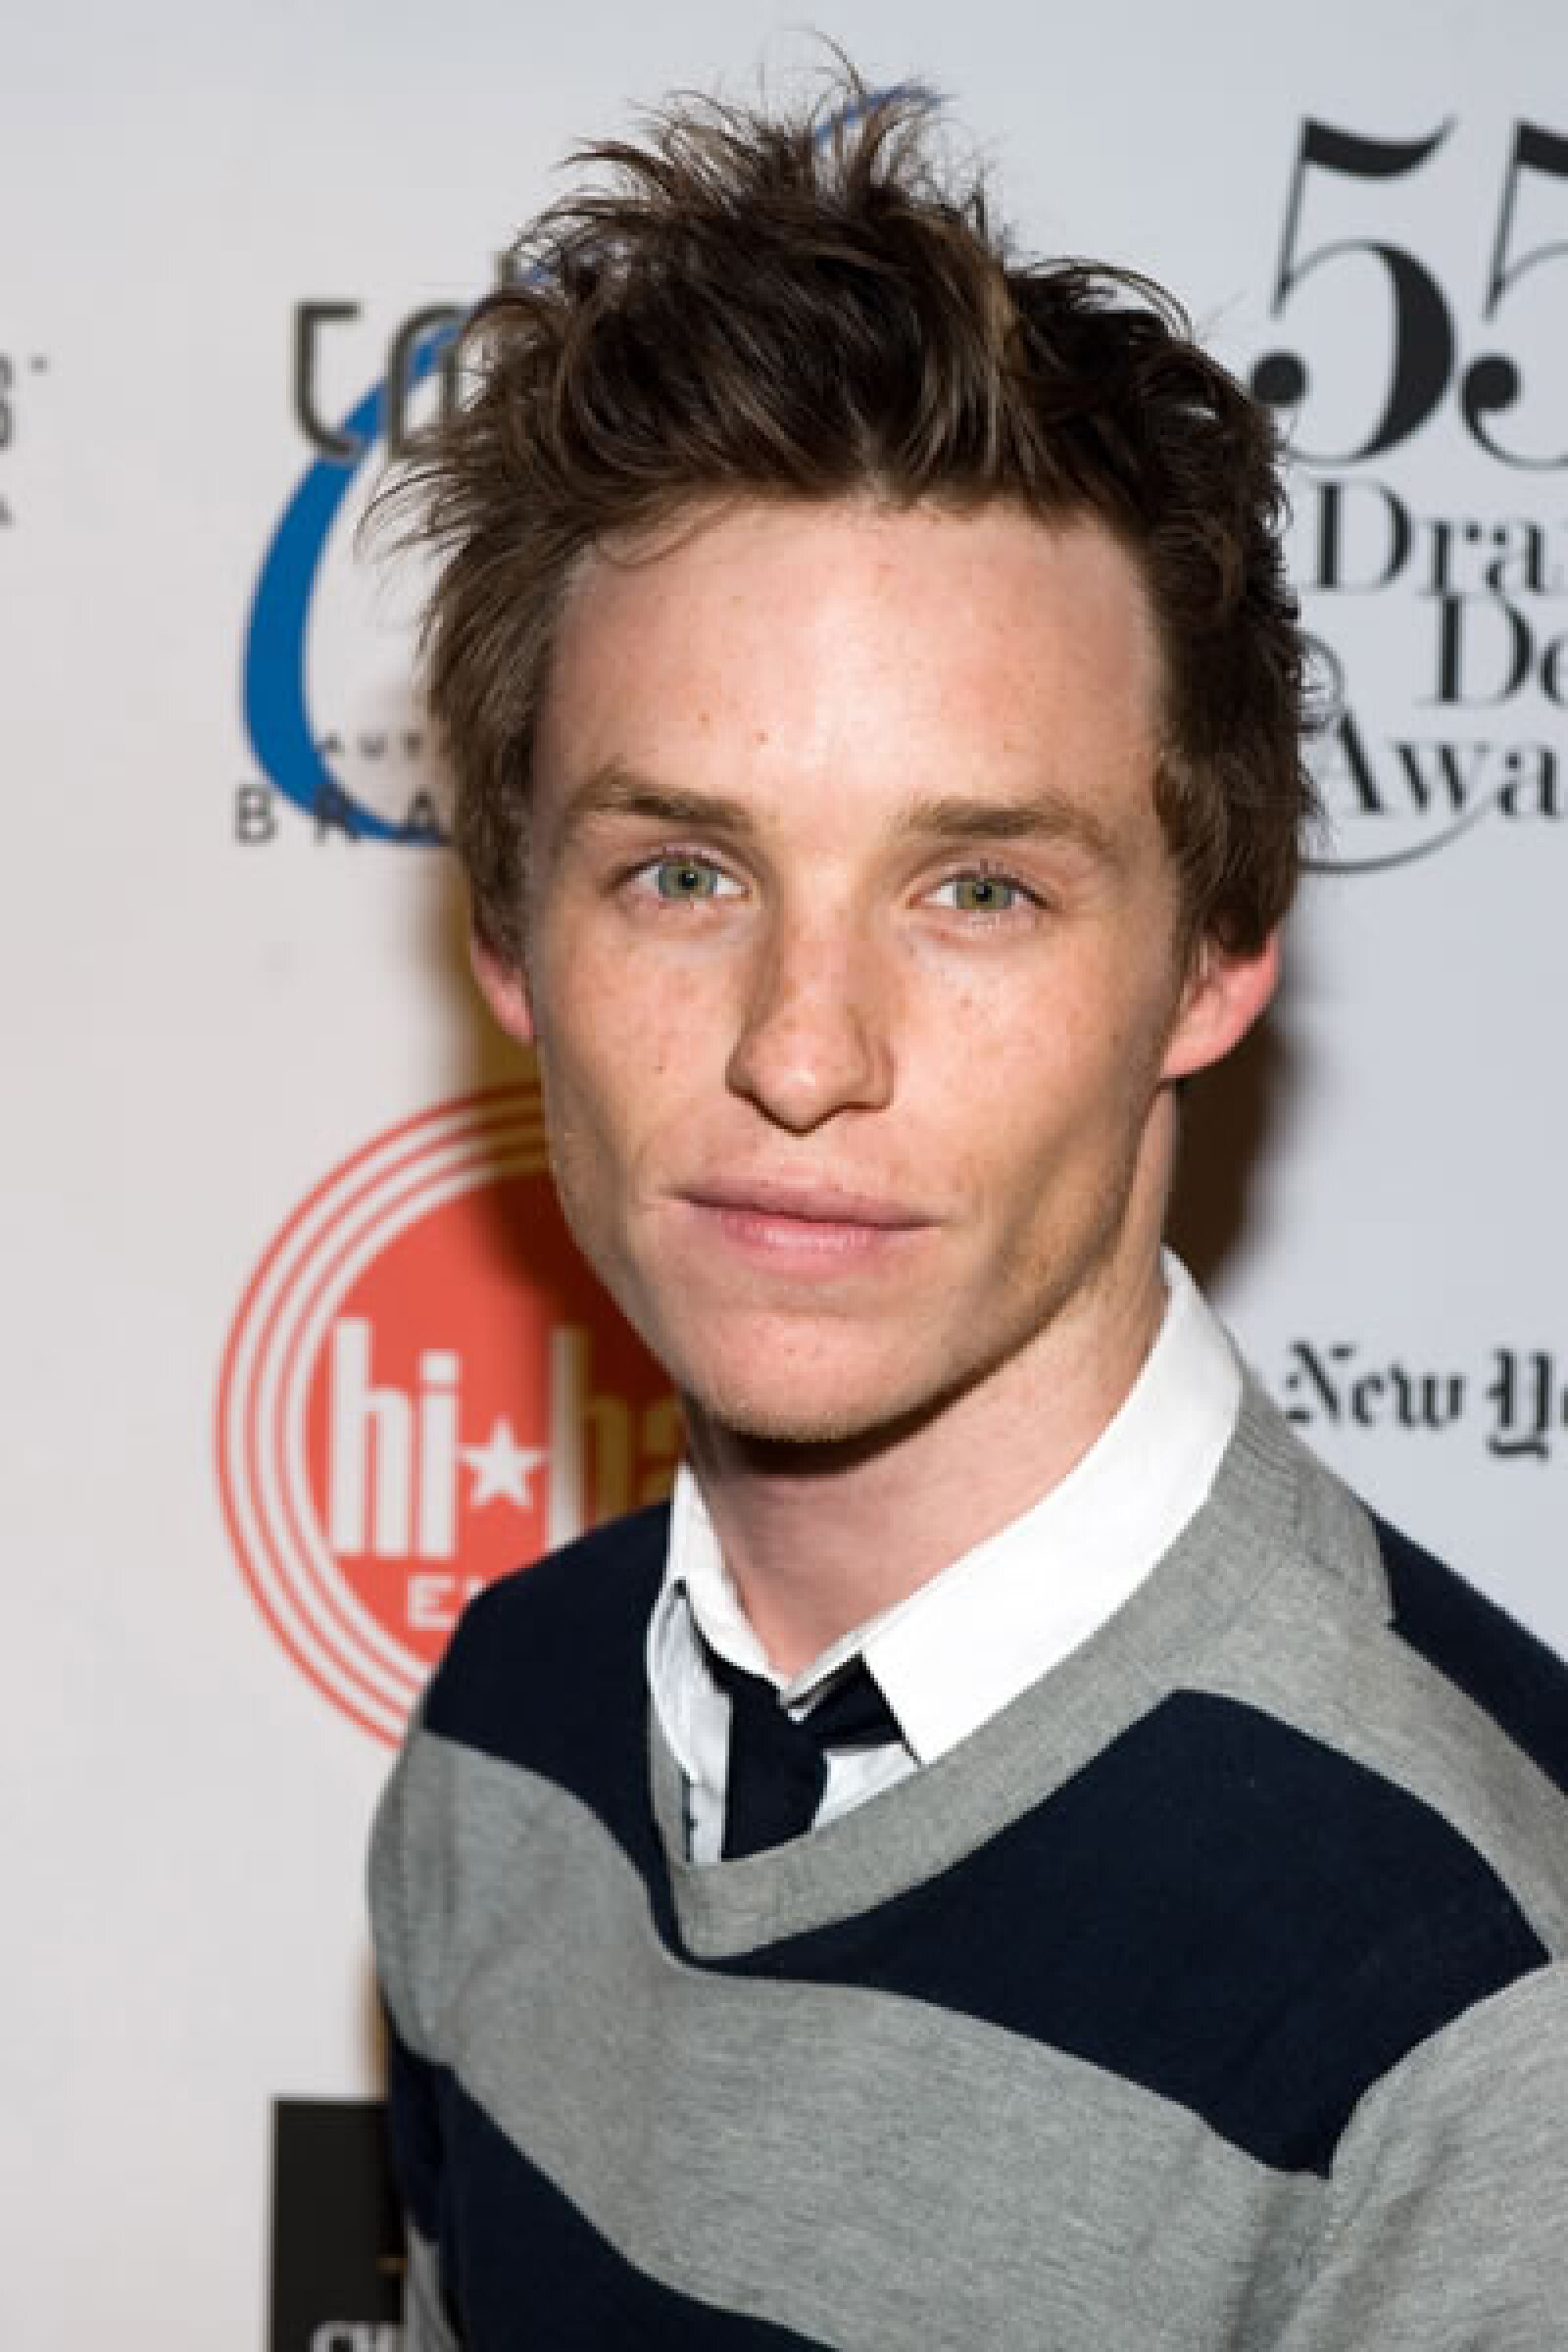 Este guapo de ojos verdes es Eddie Redmayne, a quien recordamos por `The Other Boleyn Girl´.